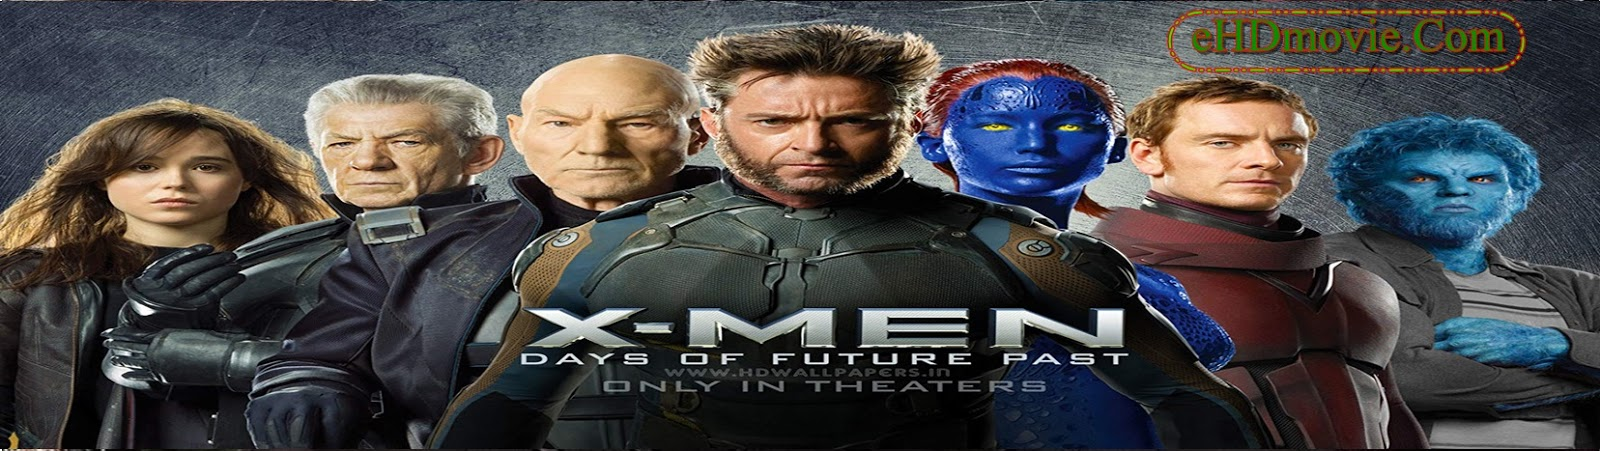 X-Men: Days of Future Past 2014 Full Movie Dual Audio [Hindi – English] 1080p - 720p - 480p ORG BRRip 400MB - 900MB - 2.7GB ESubs Free Download